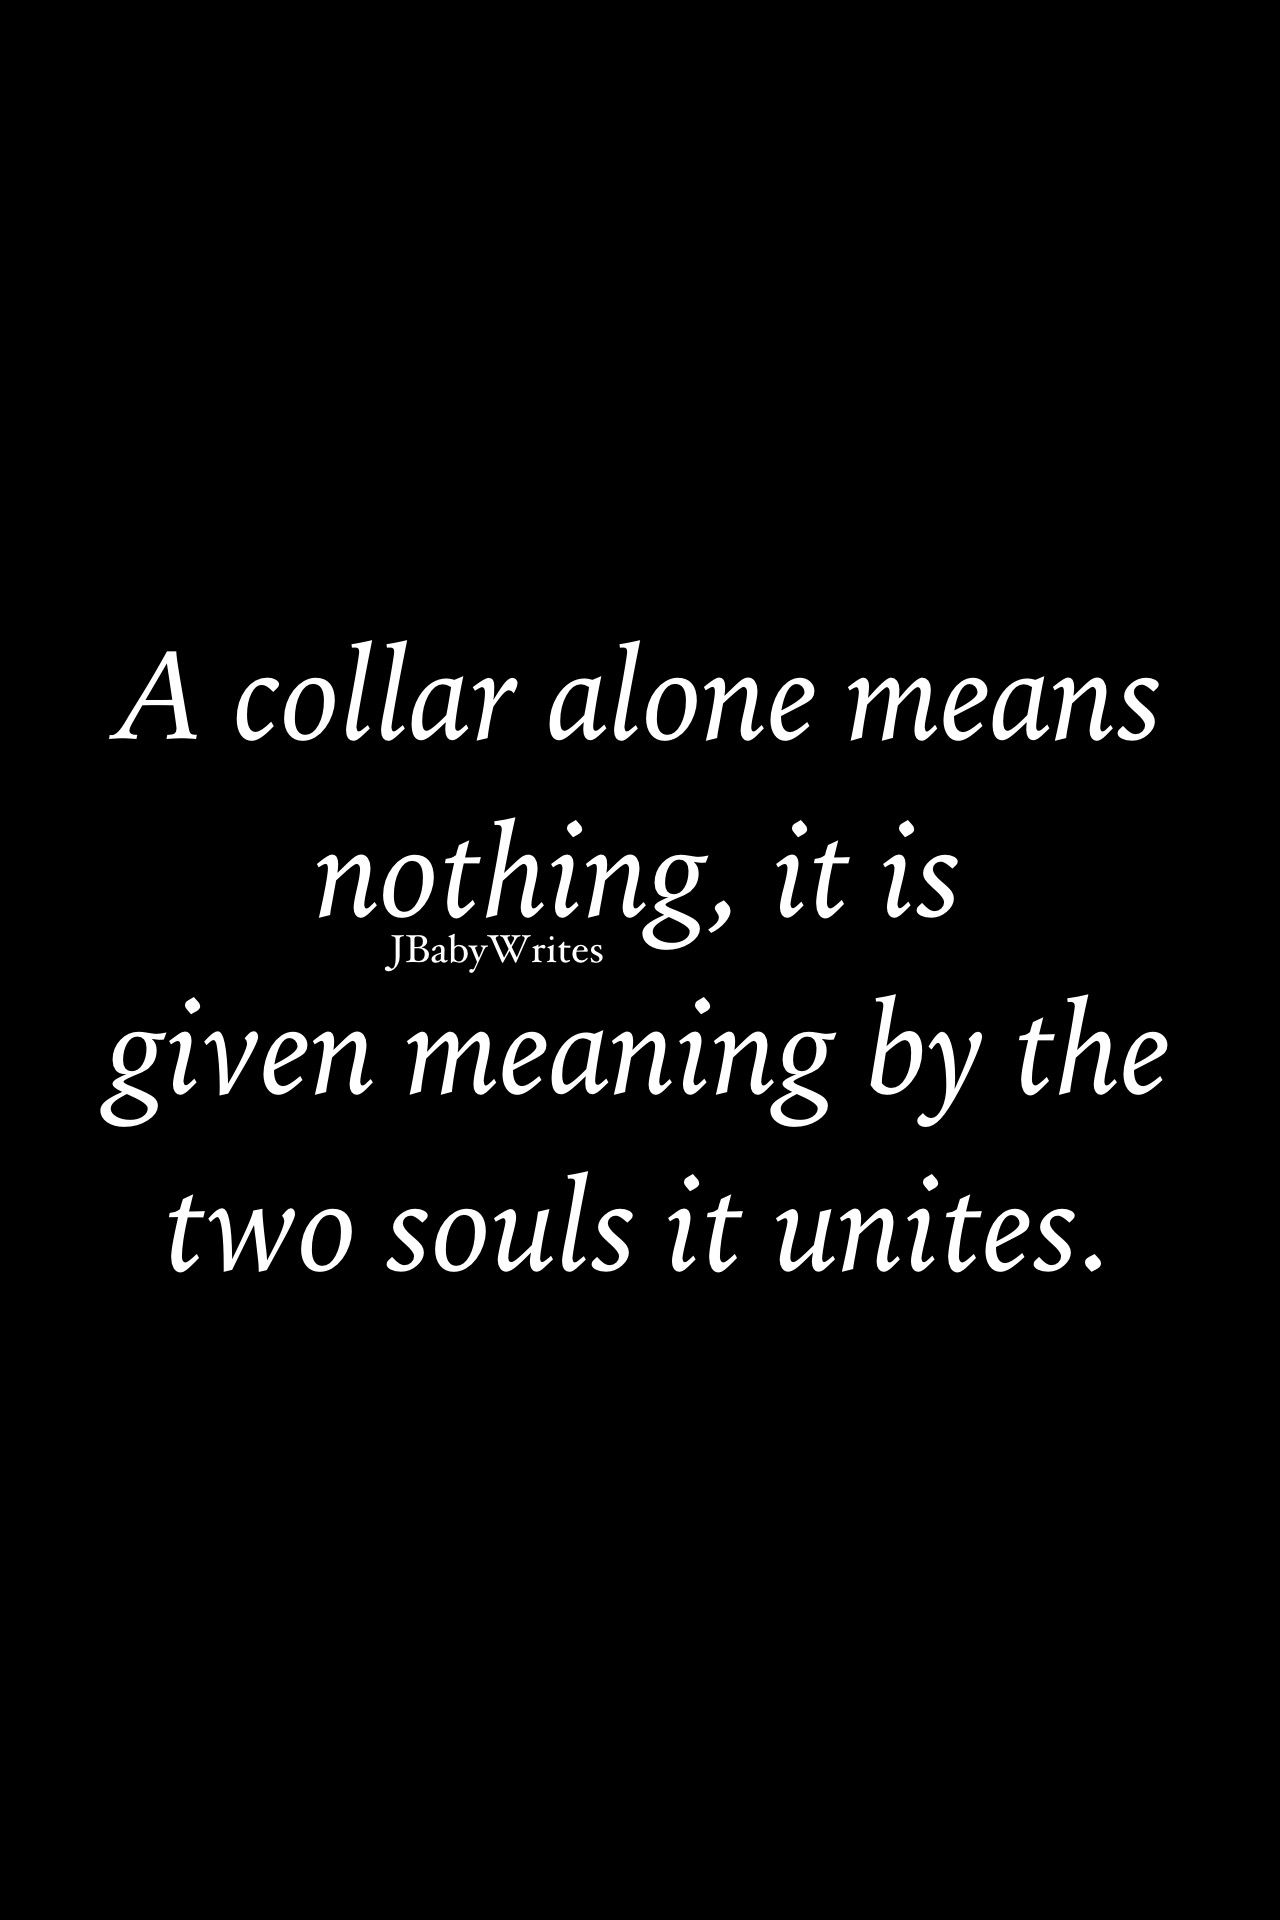 Dominant Quotes A Collar Alone Means Nothing It Is Given Meaningthe Two Souls